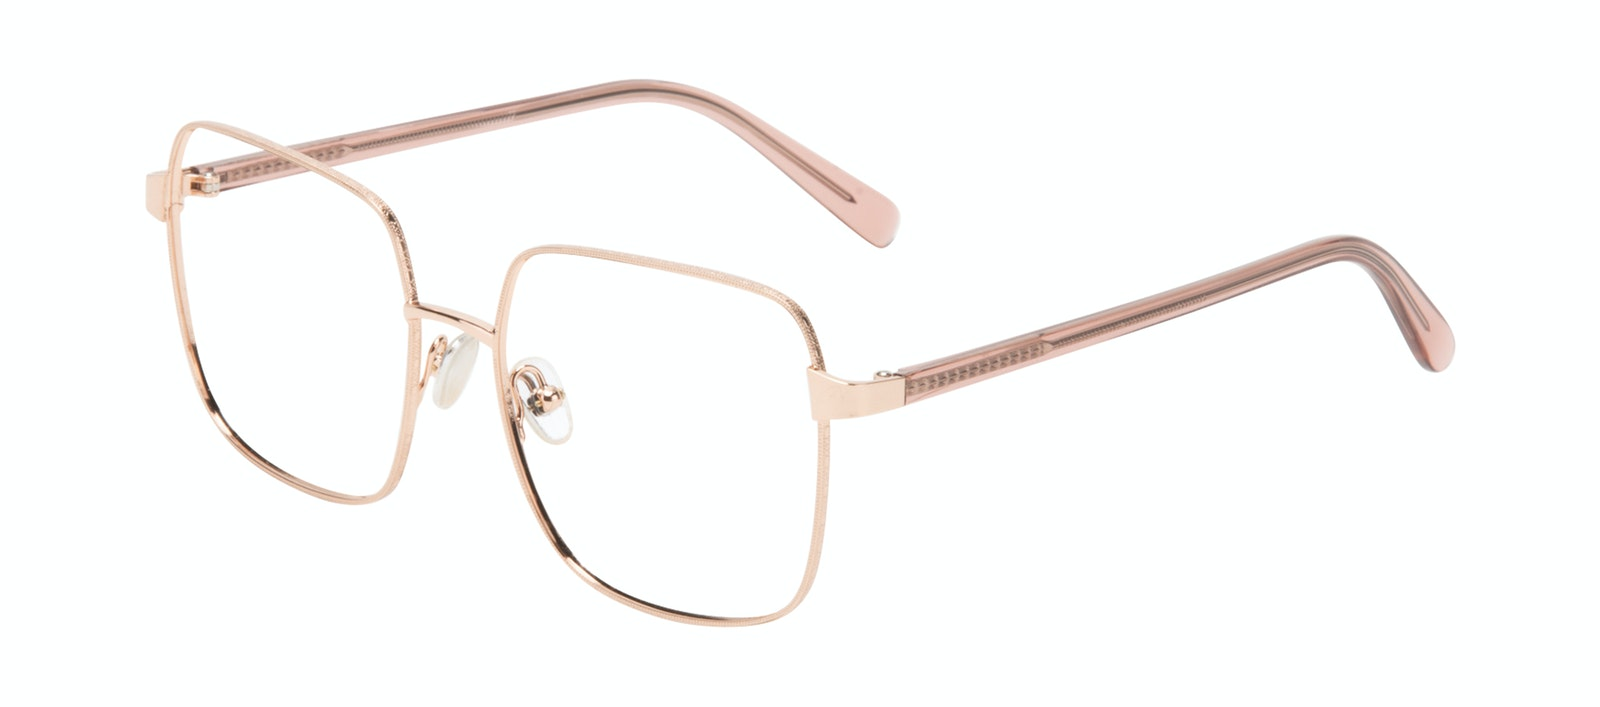 Affordable Fashion Glasses Square Eyeglasses Women Fab Rose Tilt